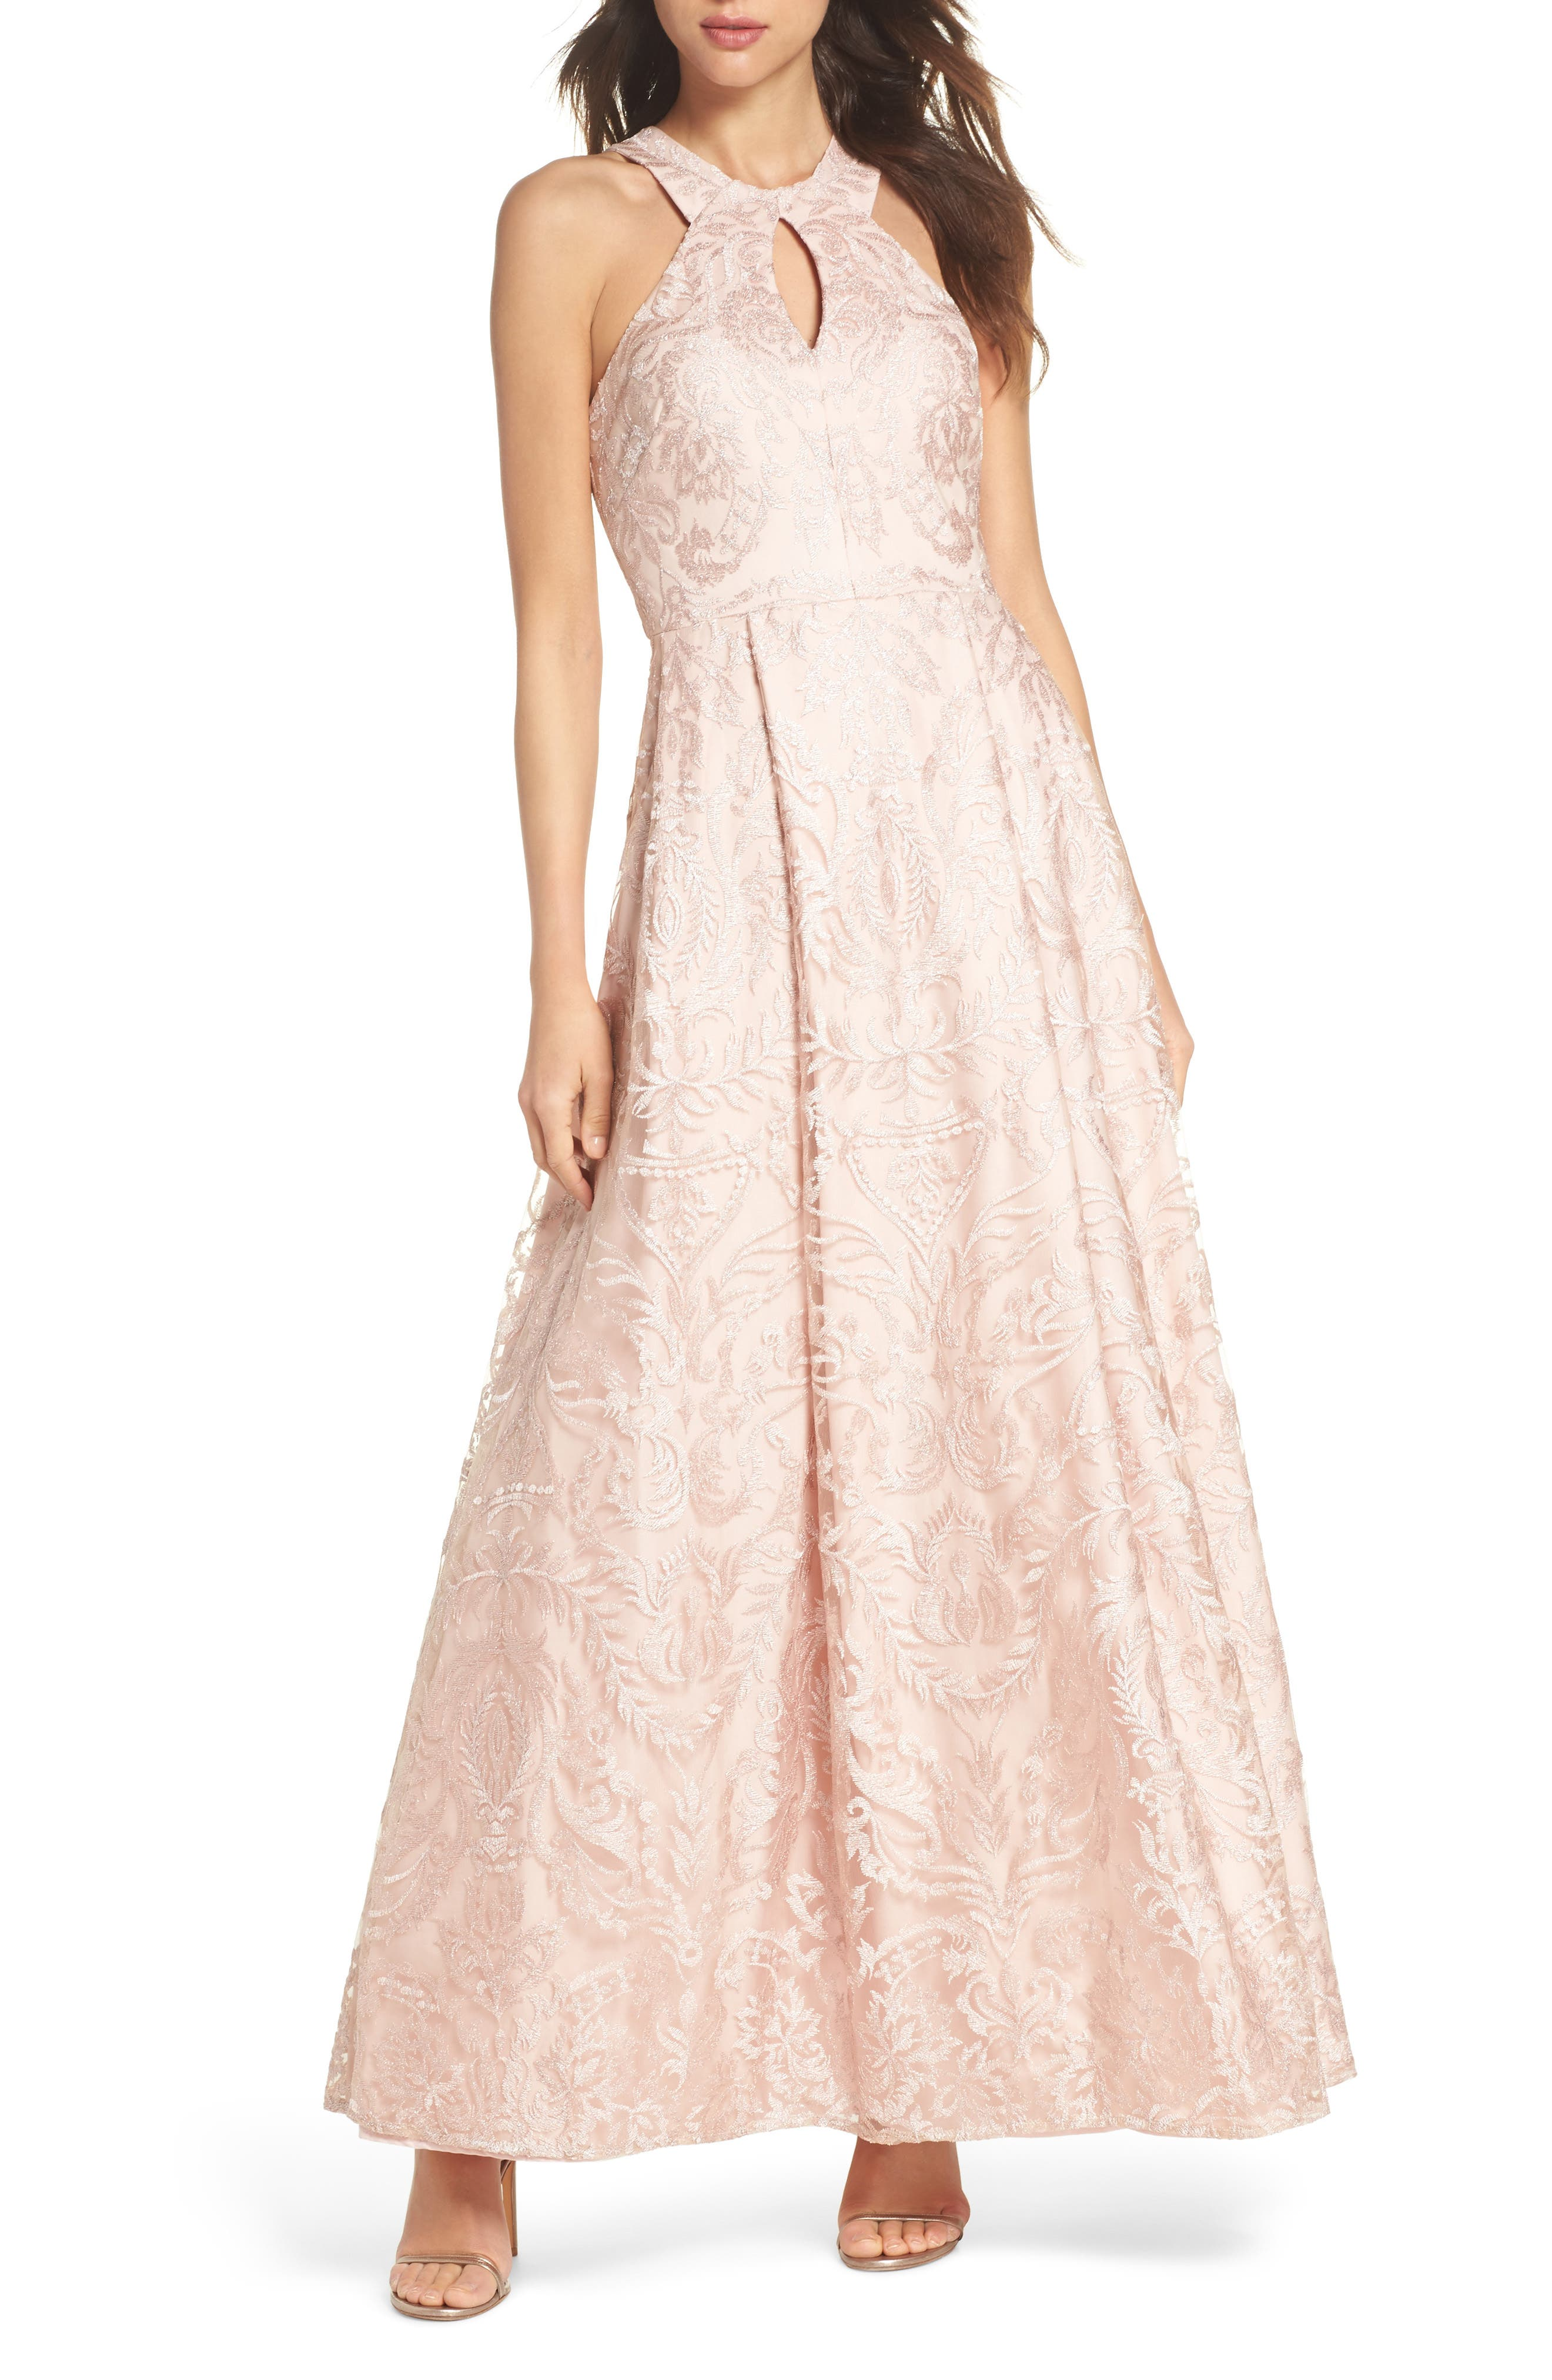 Keyhole Neck Embroidered Ballgown,                         Main,                         color, Blush / Nude